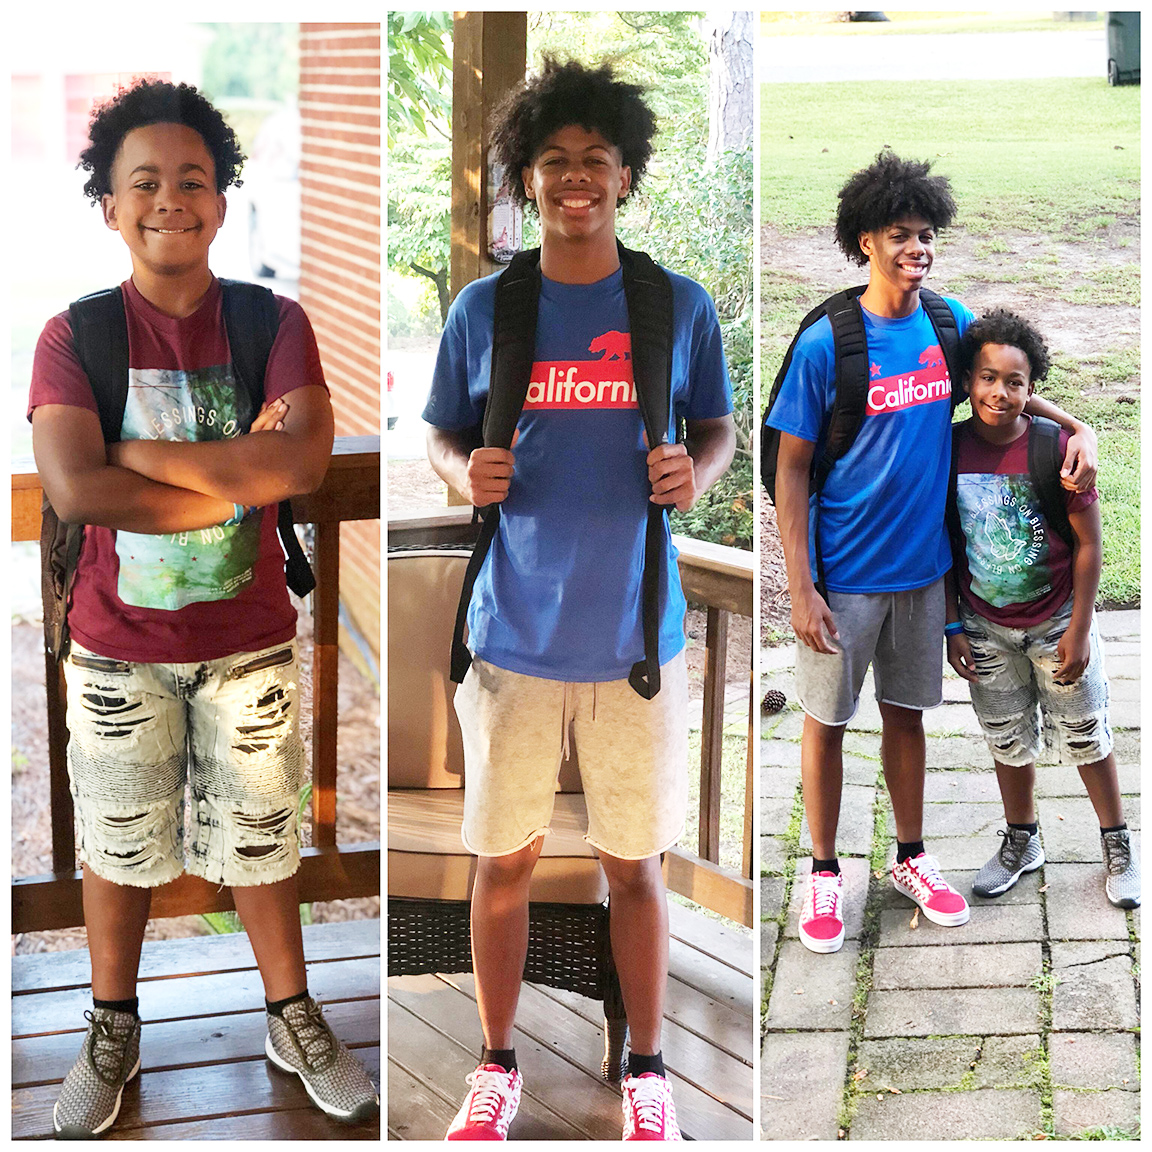 Isaiah Parson, left, sixth grade, Contentnea-Savannah K-8 School; Isaac Parson, junior, Kinston High School